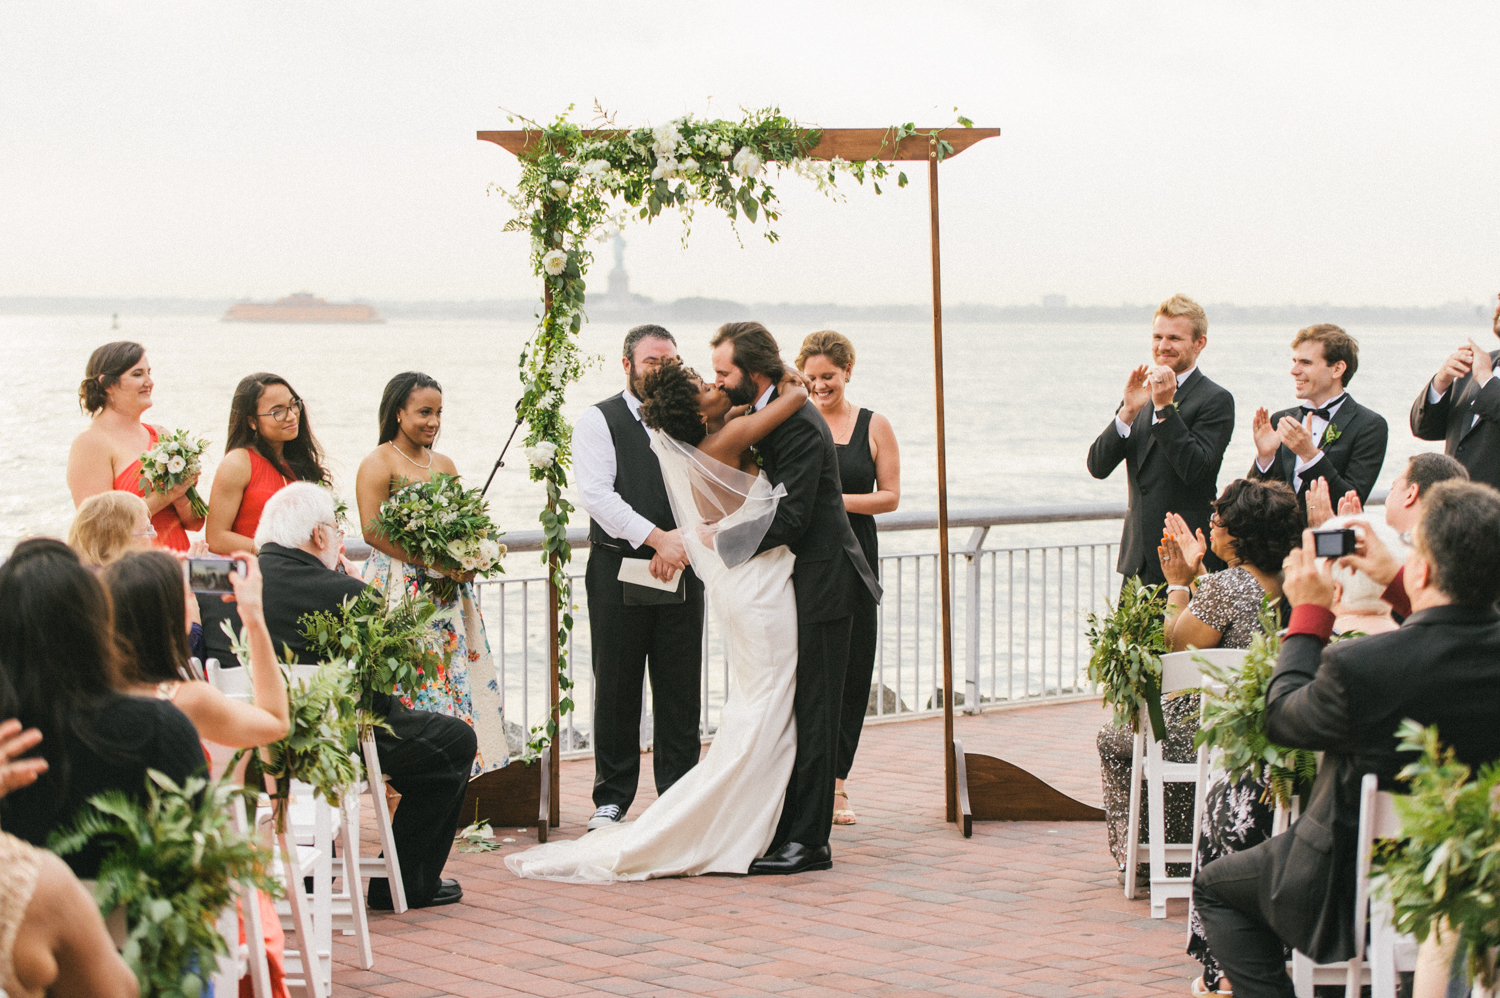 LibertyWarehouse.Brooklyn.RedHook.Wedding22.jpg